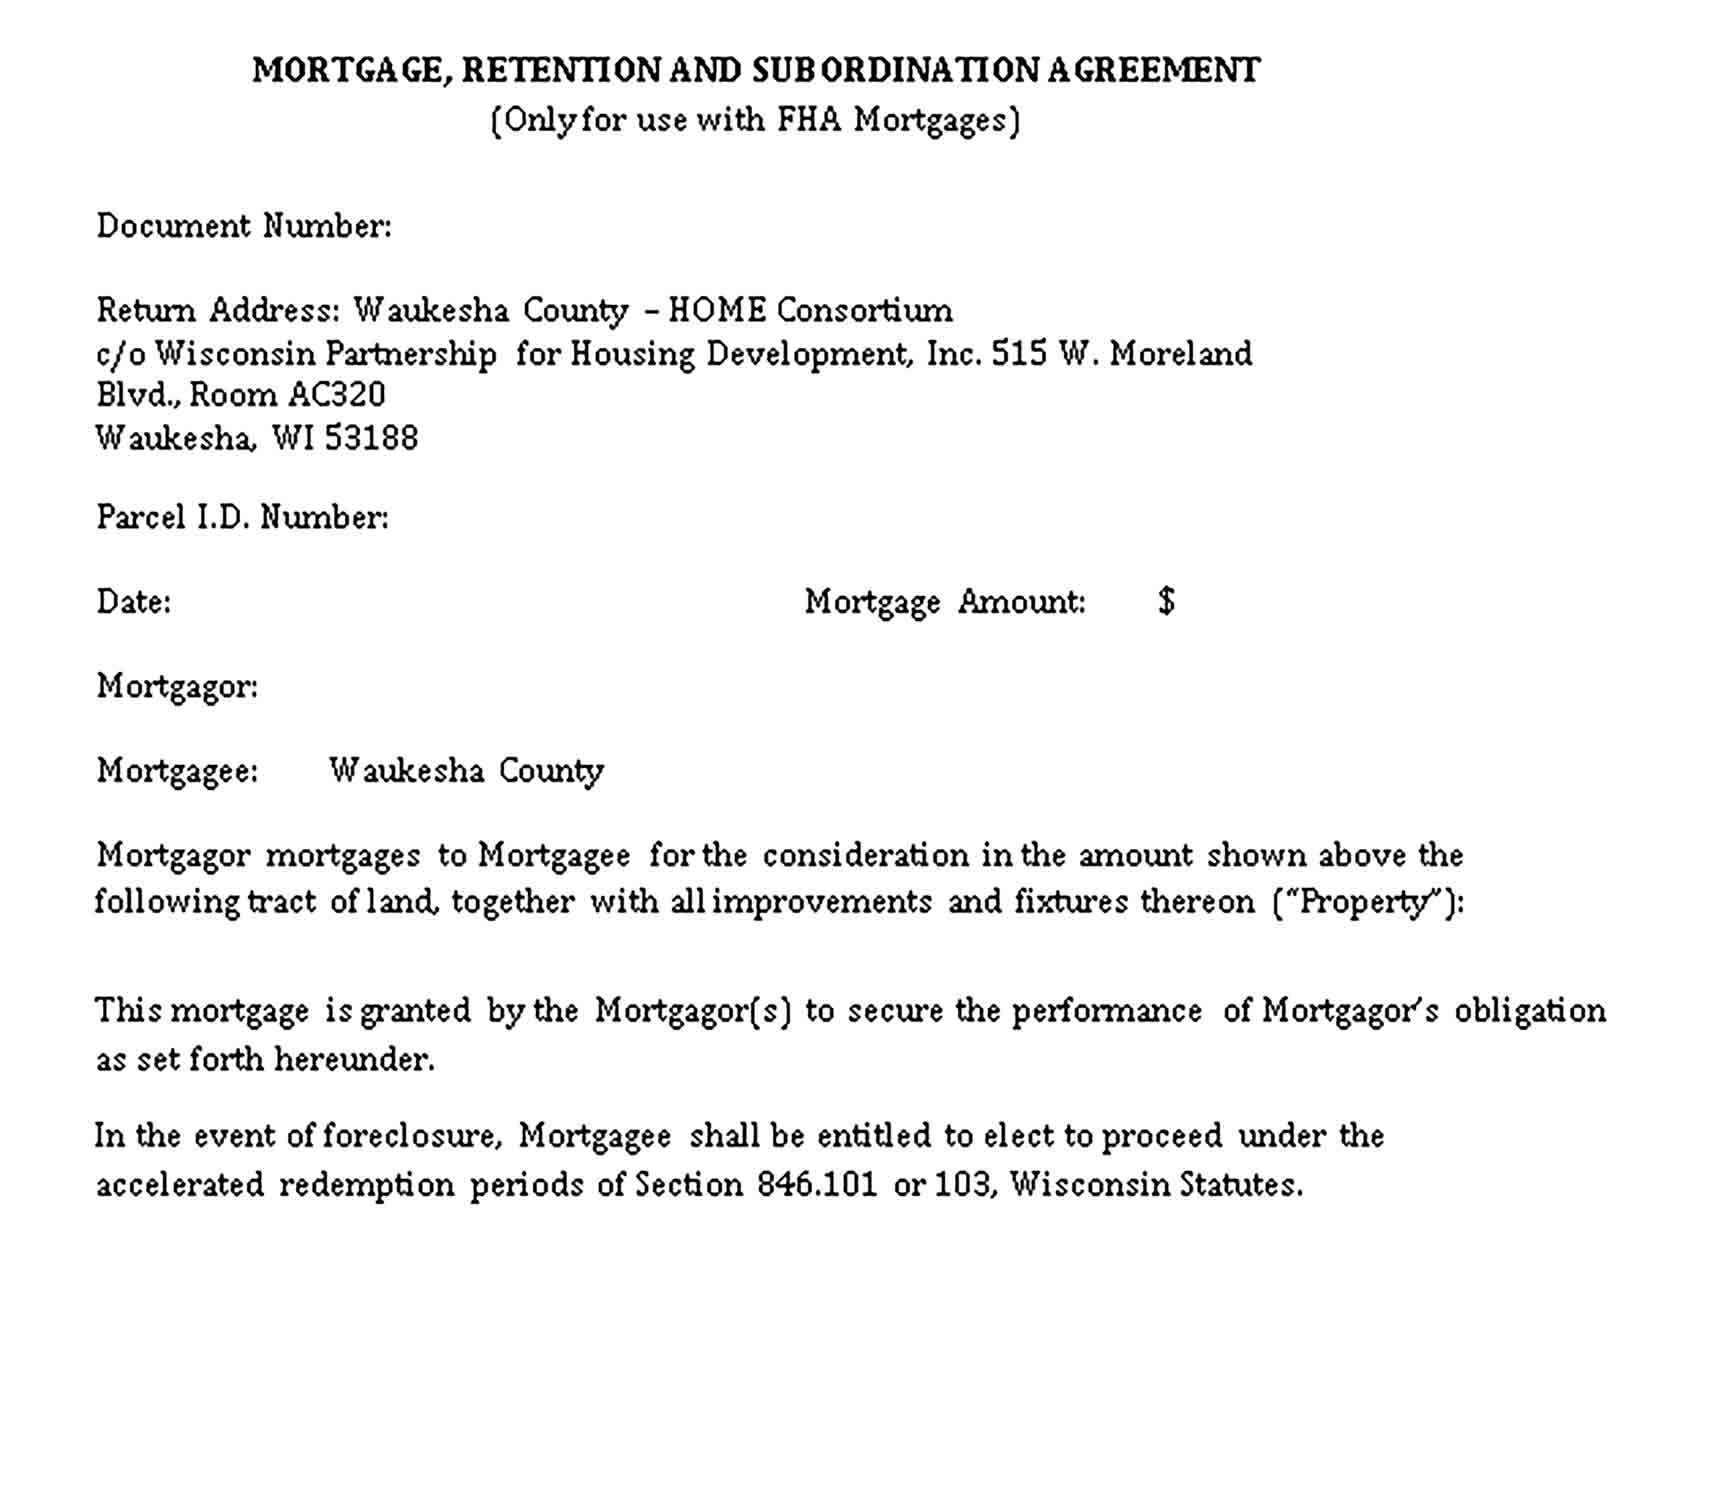 Templates Mortgage Retention and Subordination Agreement Sample